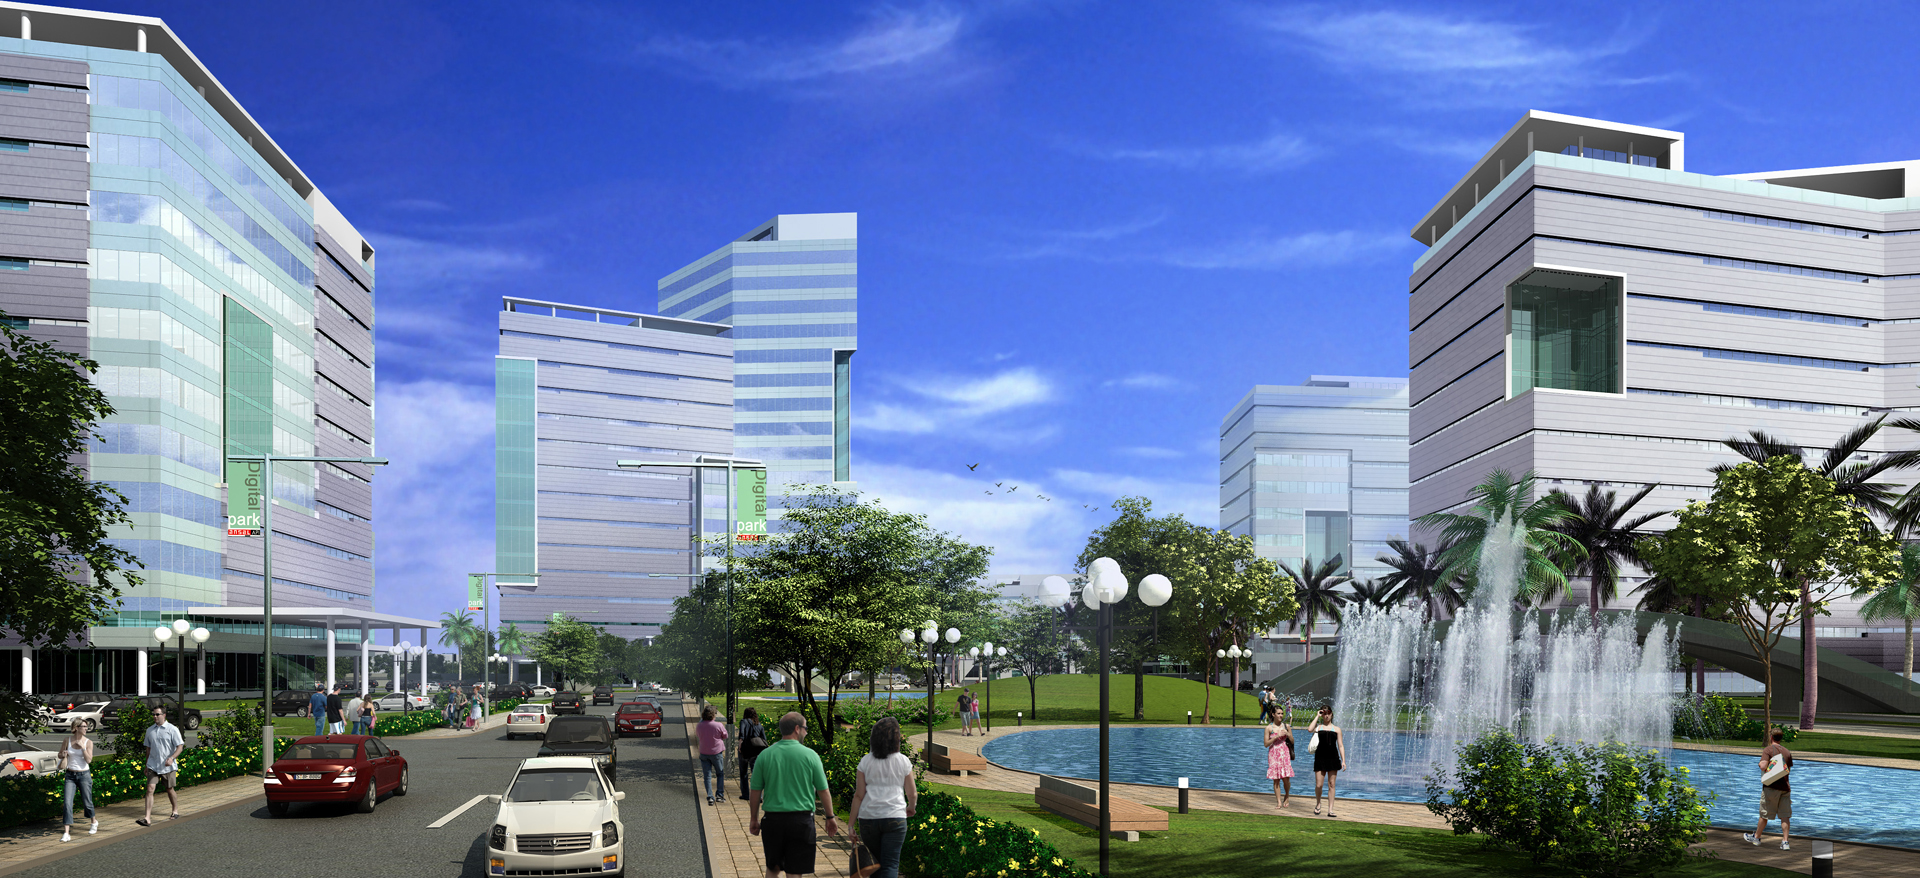 IT Park, Uttar Pradesh, India